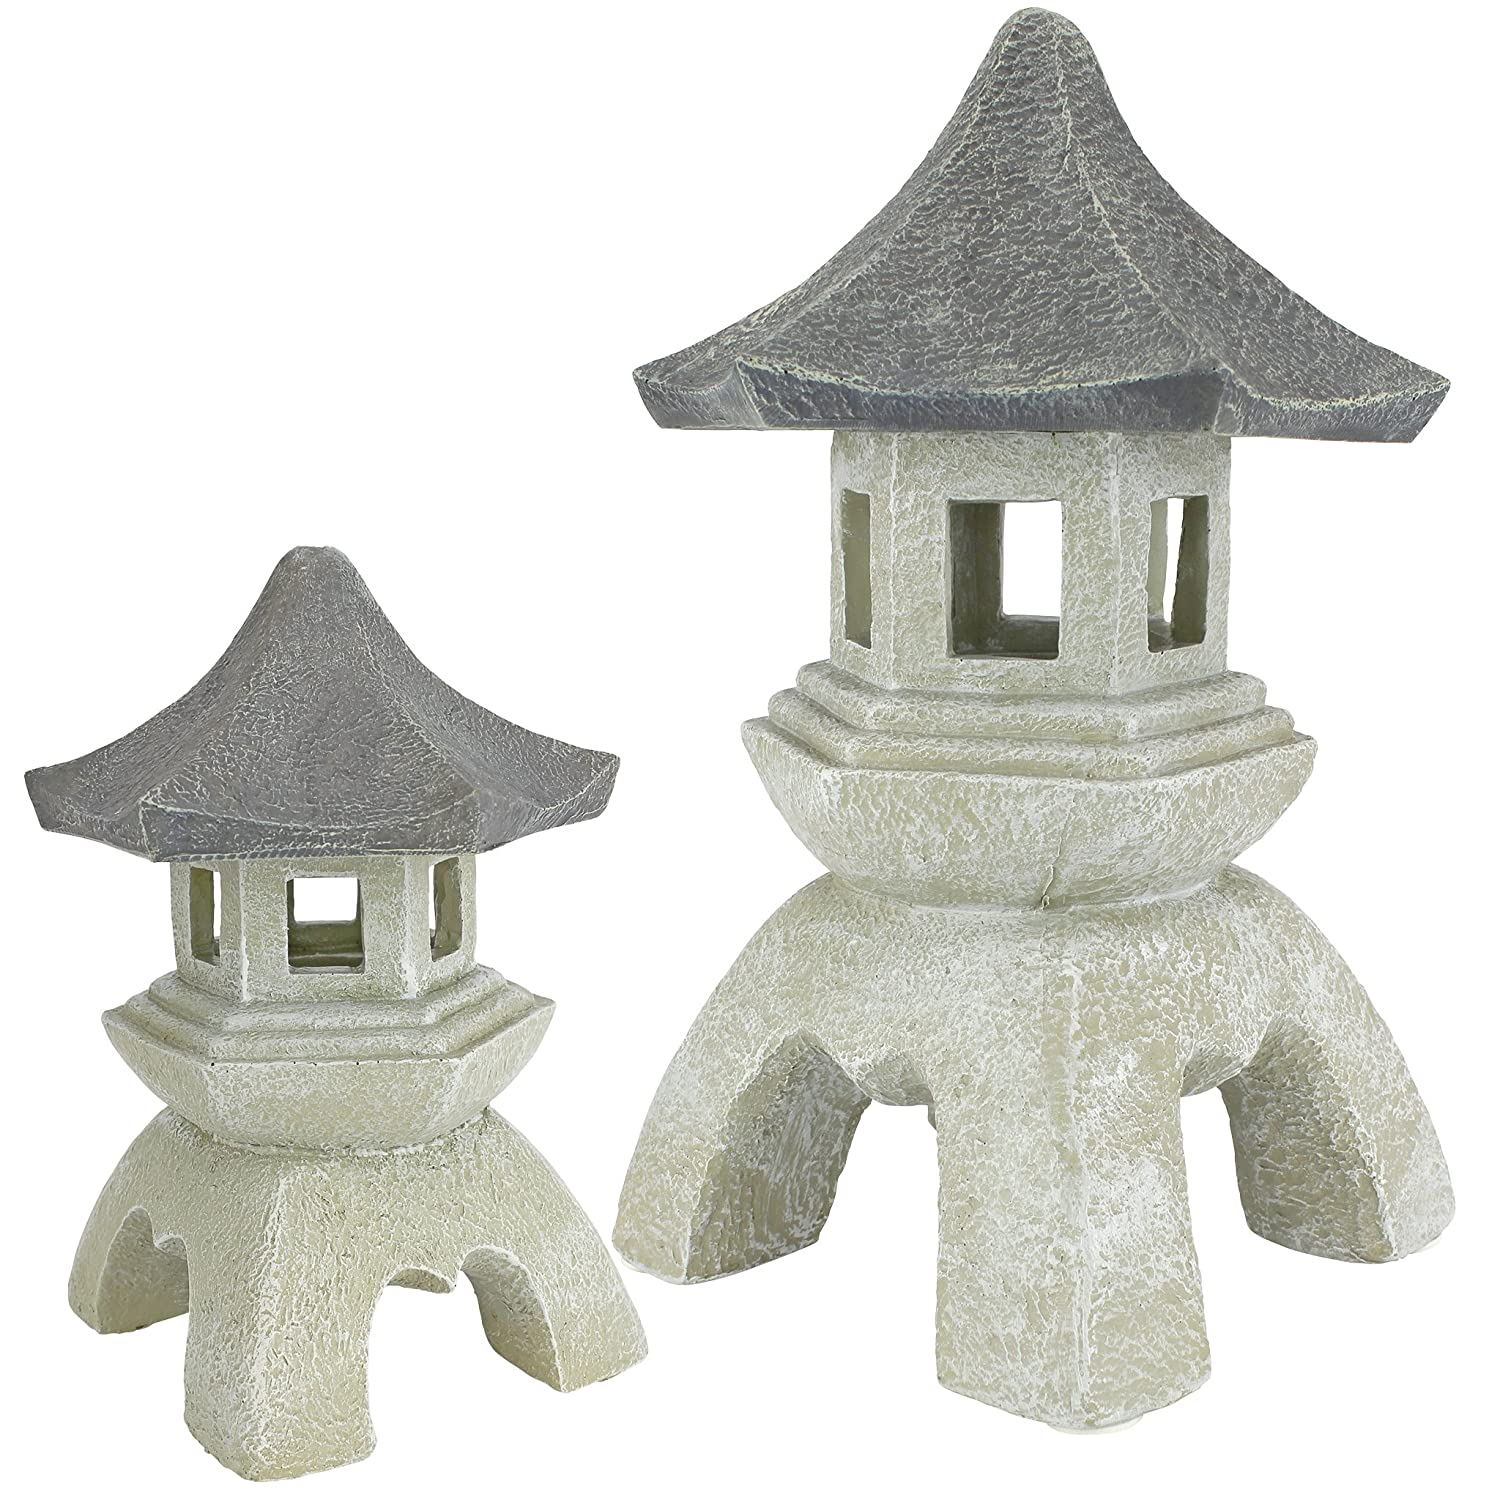 Japanese Pagoda Lantern Sculptures, Set of 2